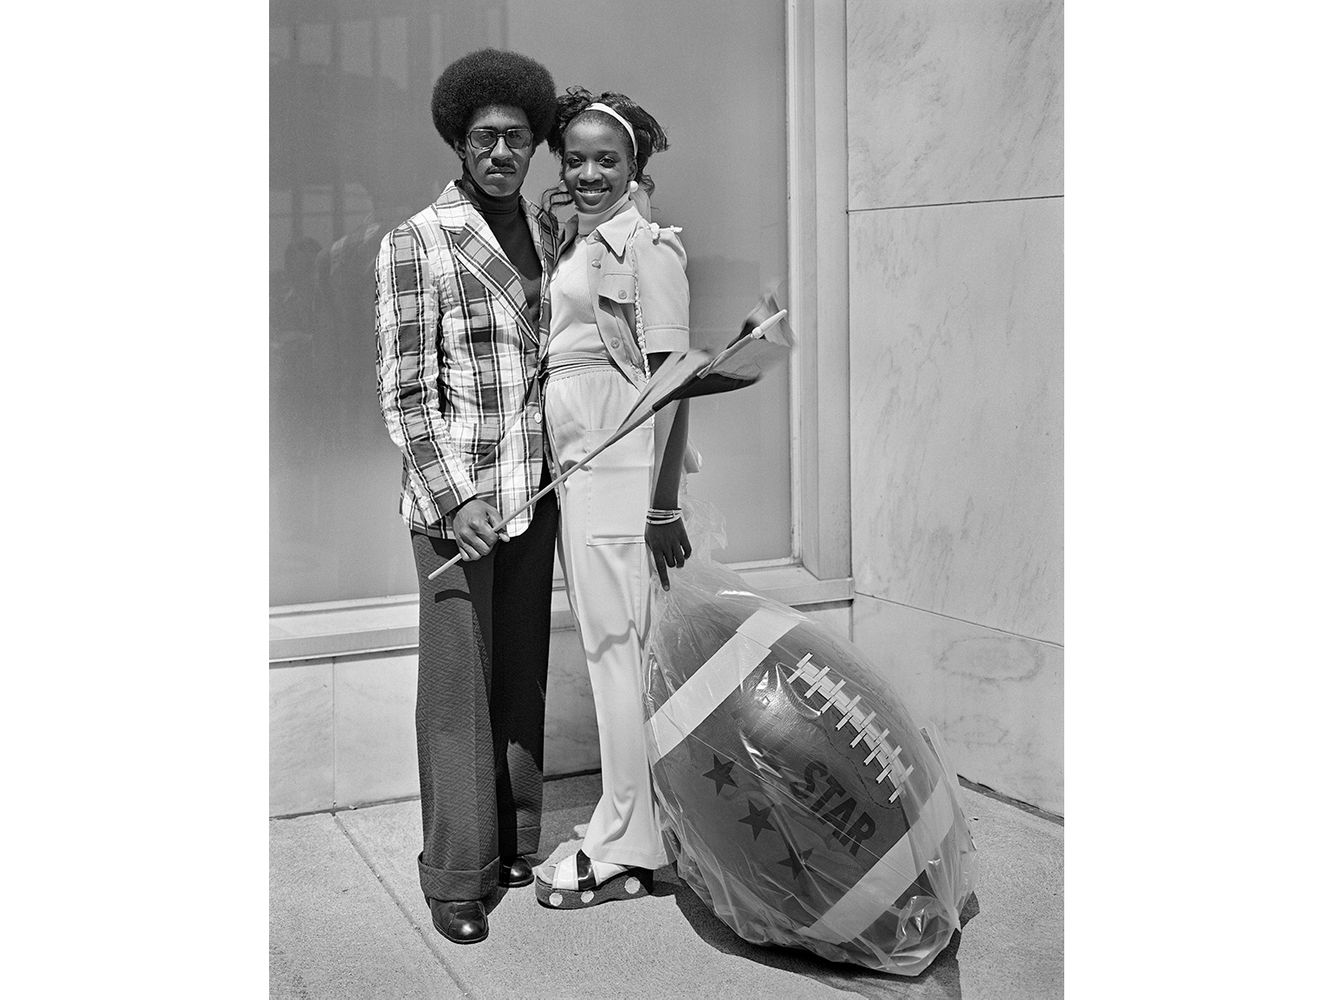 A Black Couple with Carnival Prizes, Detroit 1973